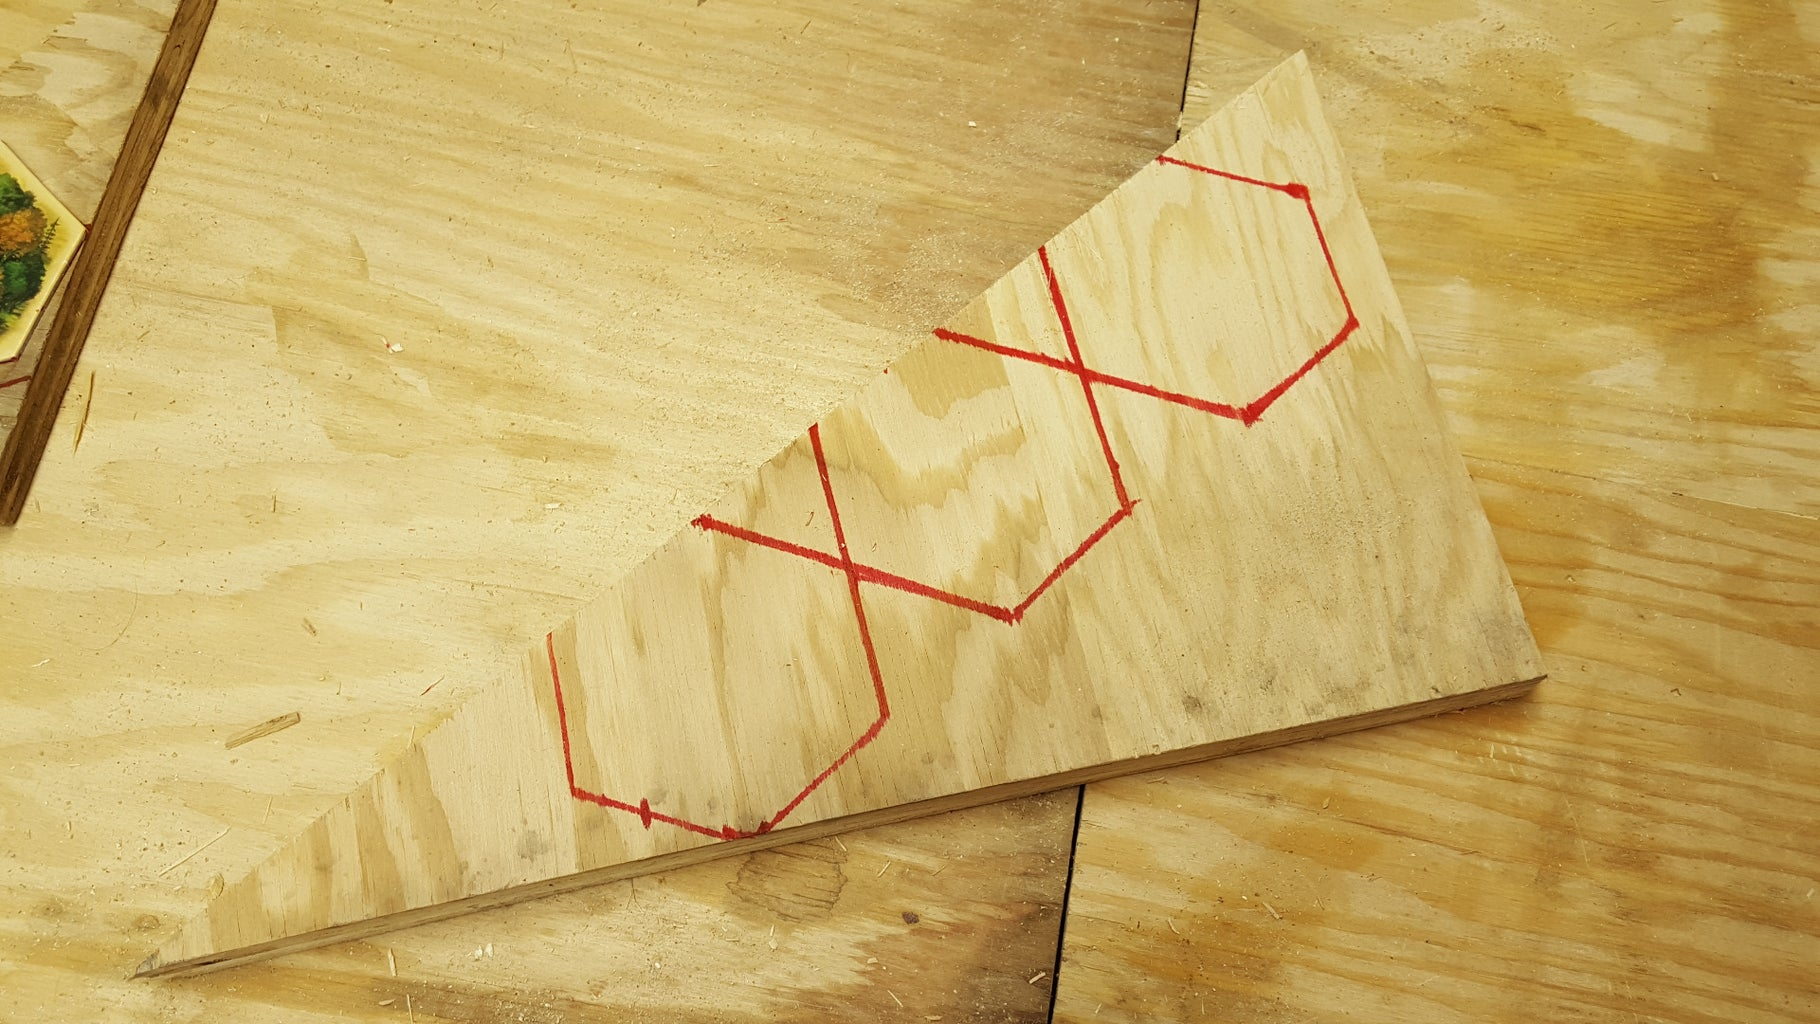 Trace & Cut Out the Inside Pieces of the Board